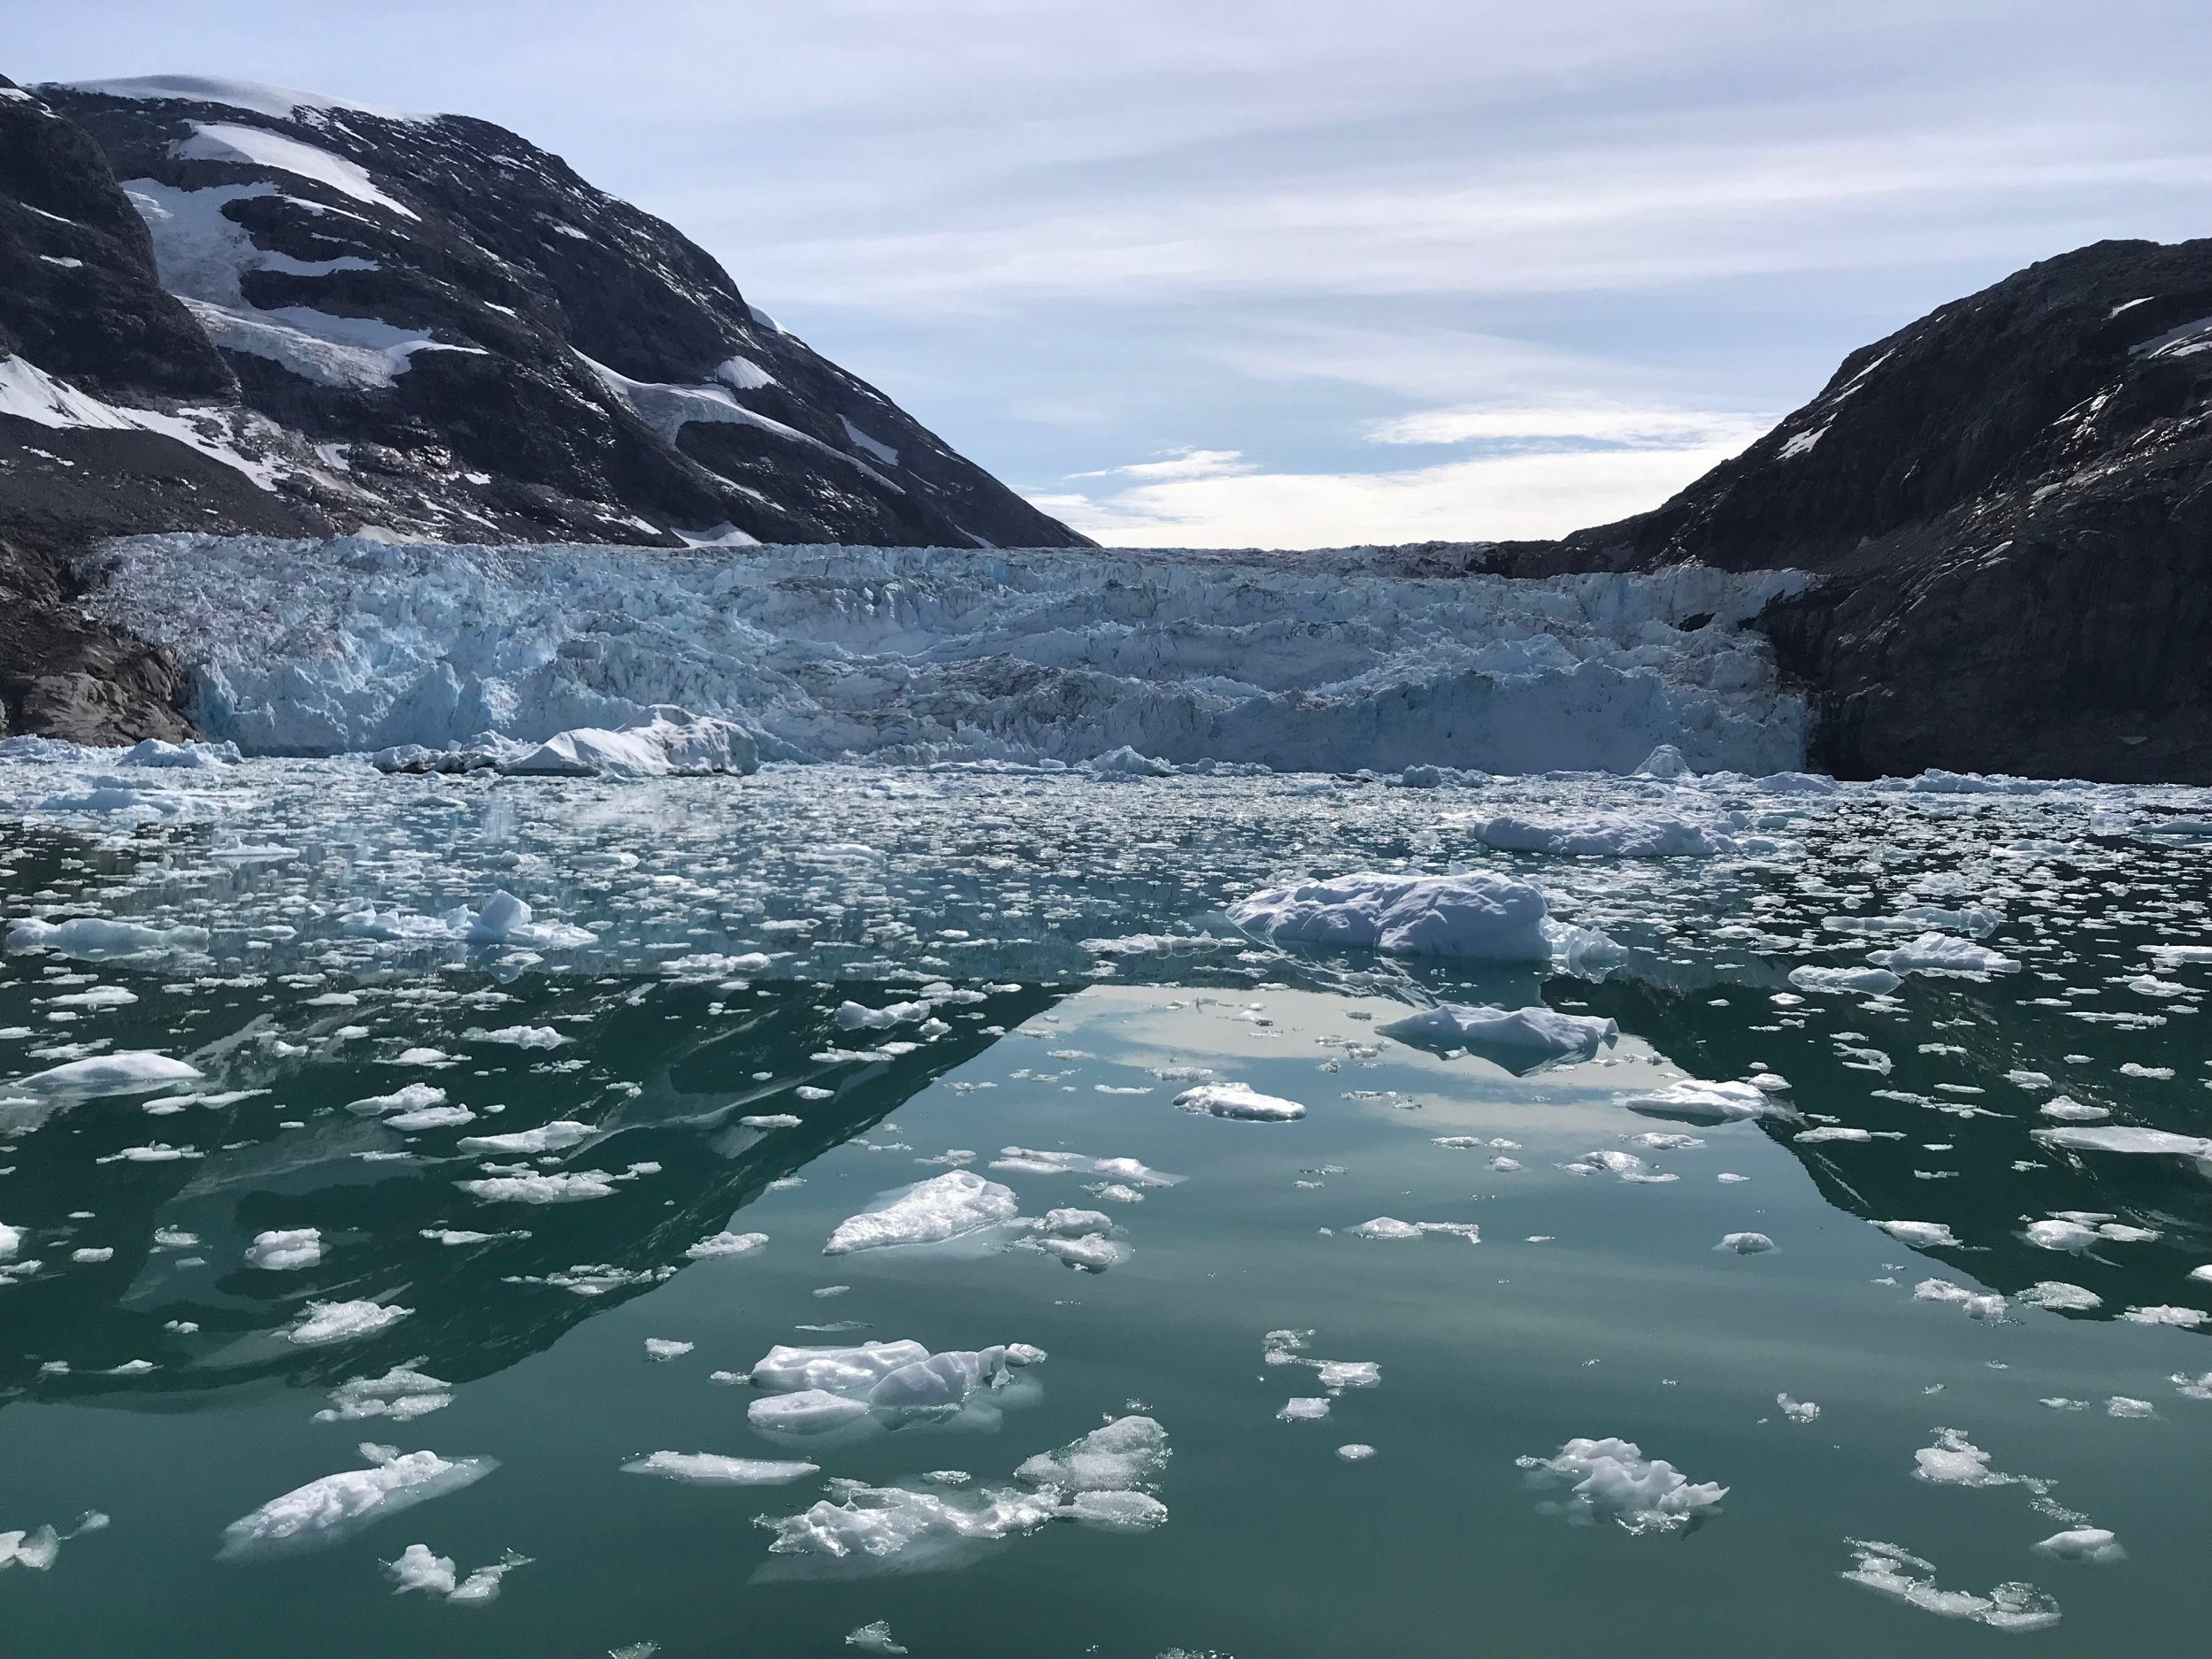 Glaciology: Researchers calculate decades of 'scary' Greenland ice melting